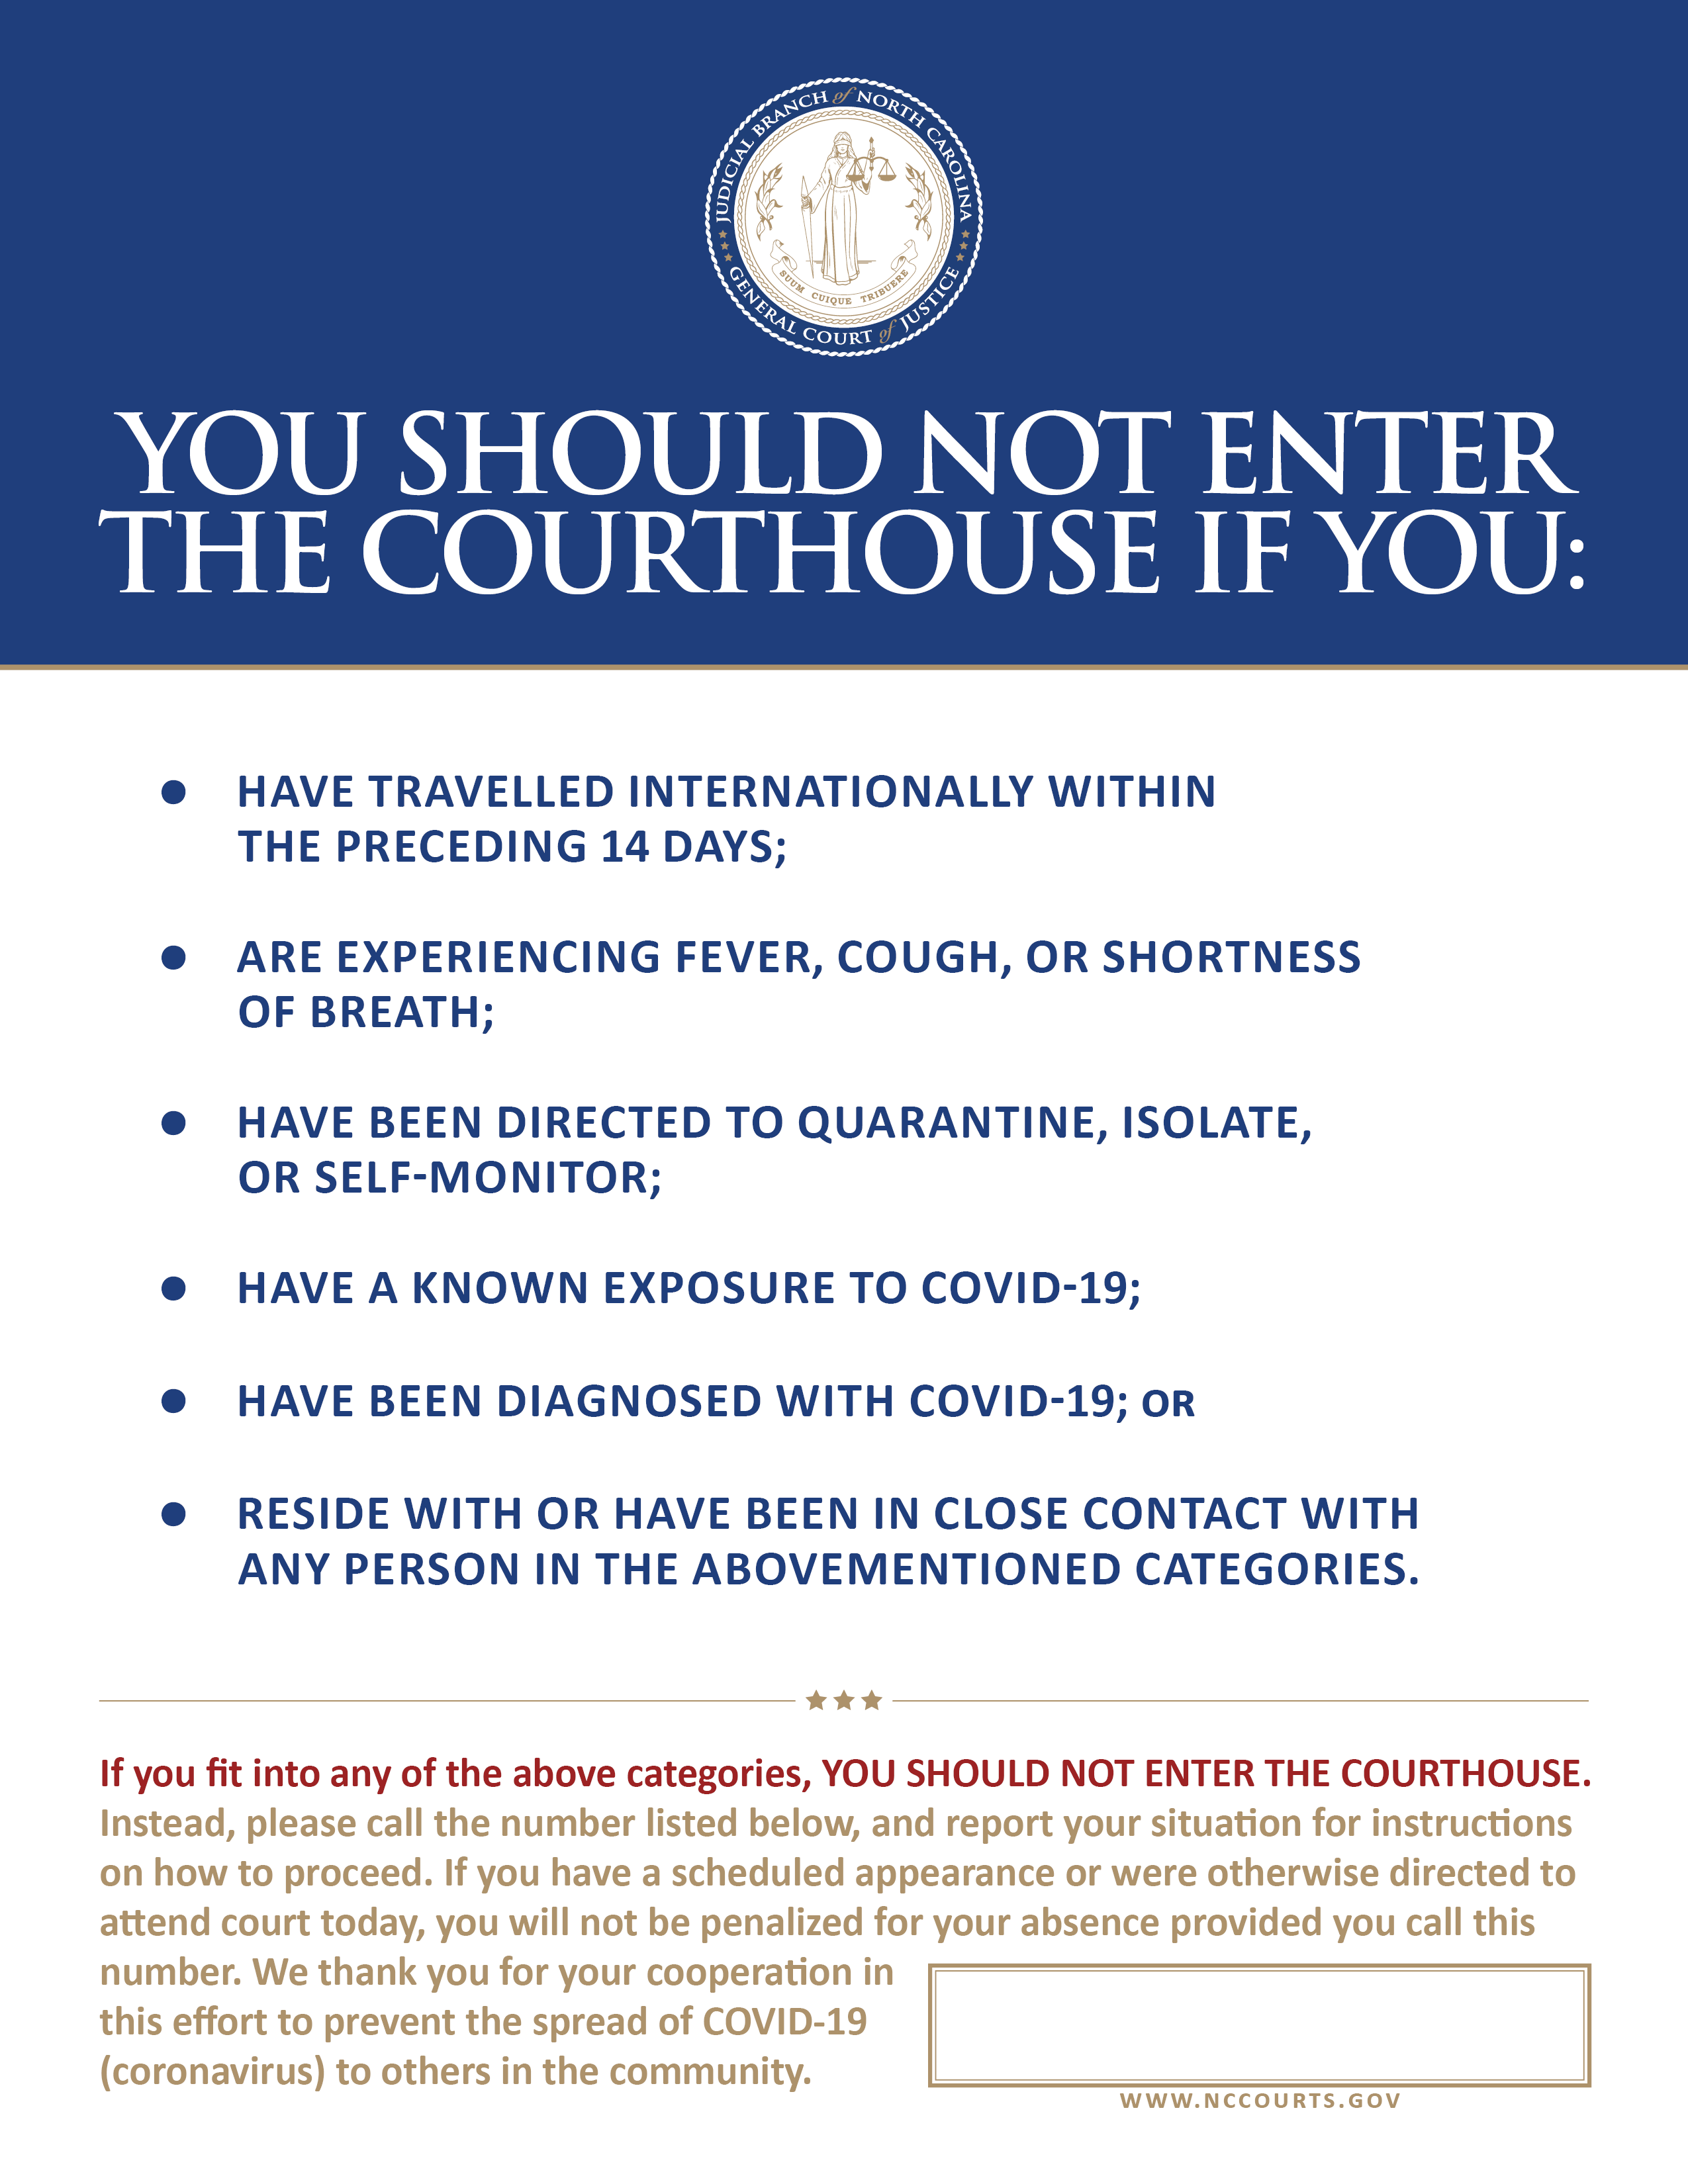 Do Not Enter Courthouse